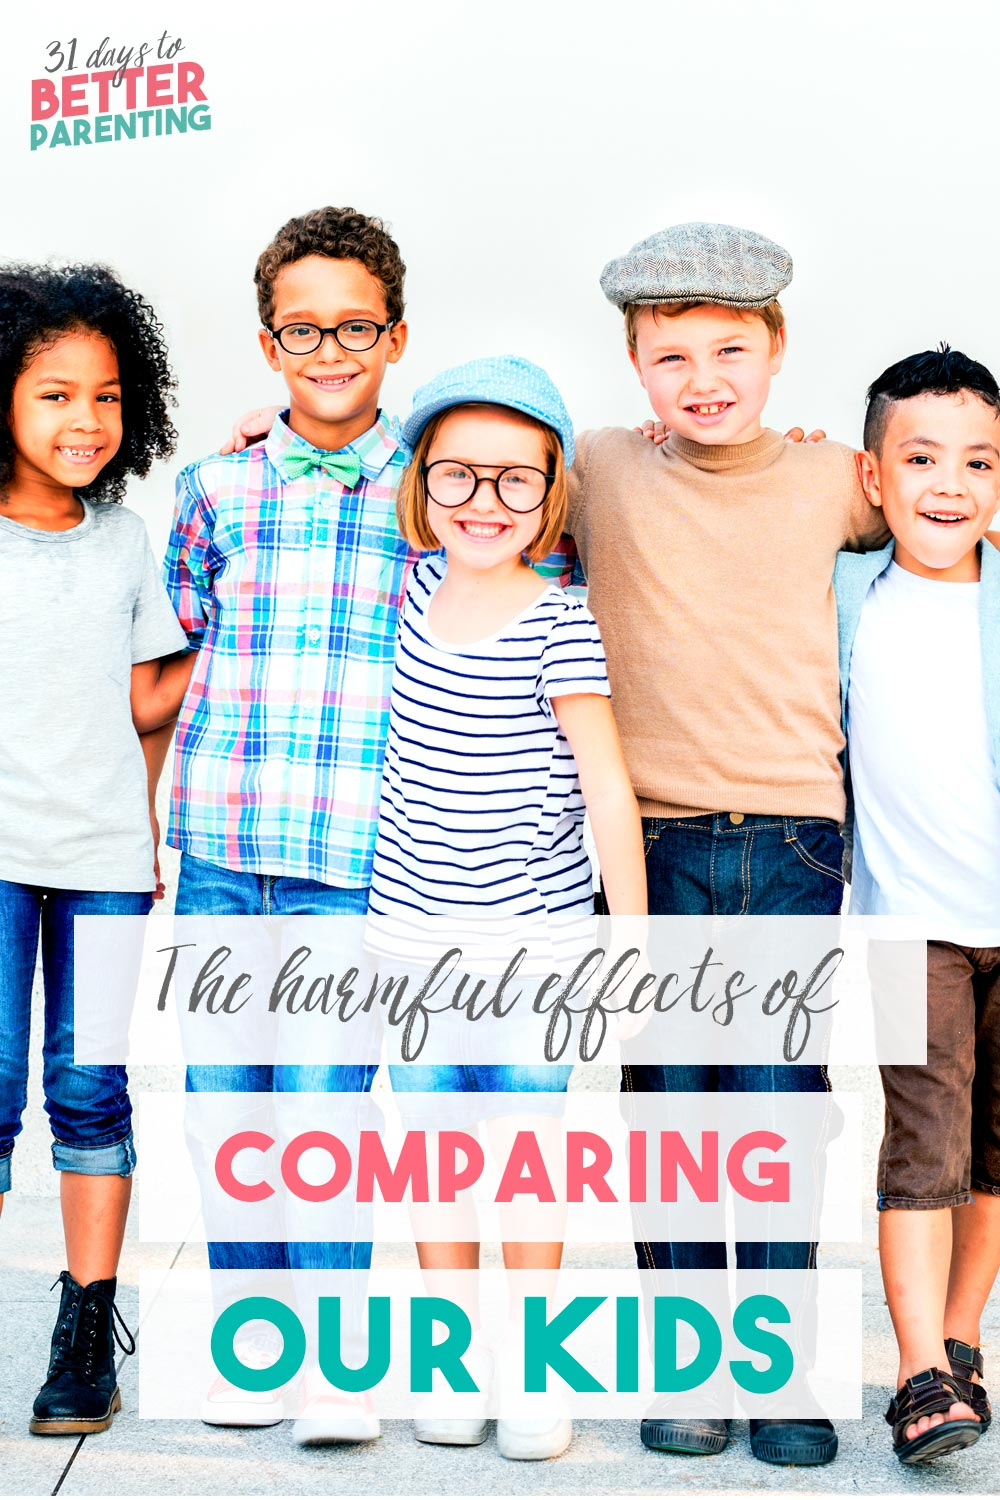 It's so easy to compare our kids, whether their milestones, achievements or interests. But here's why we need to stop comparing kids and what you can do instead.